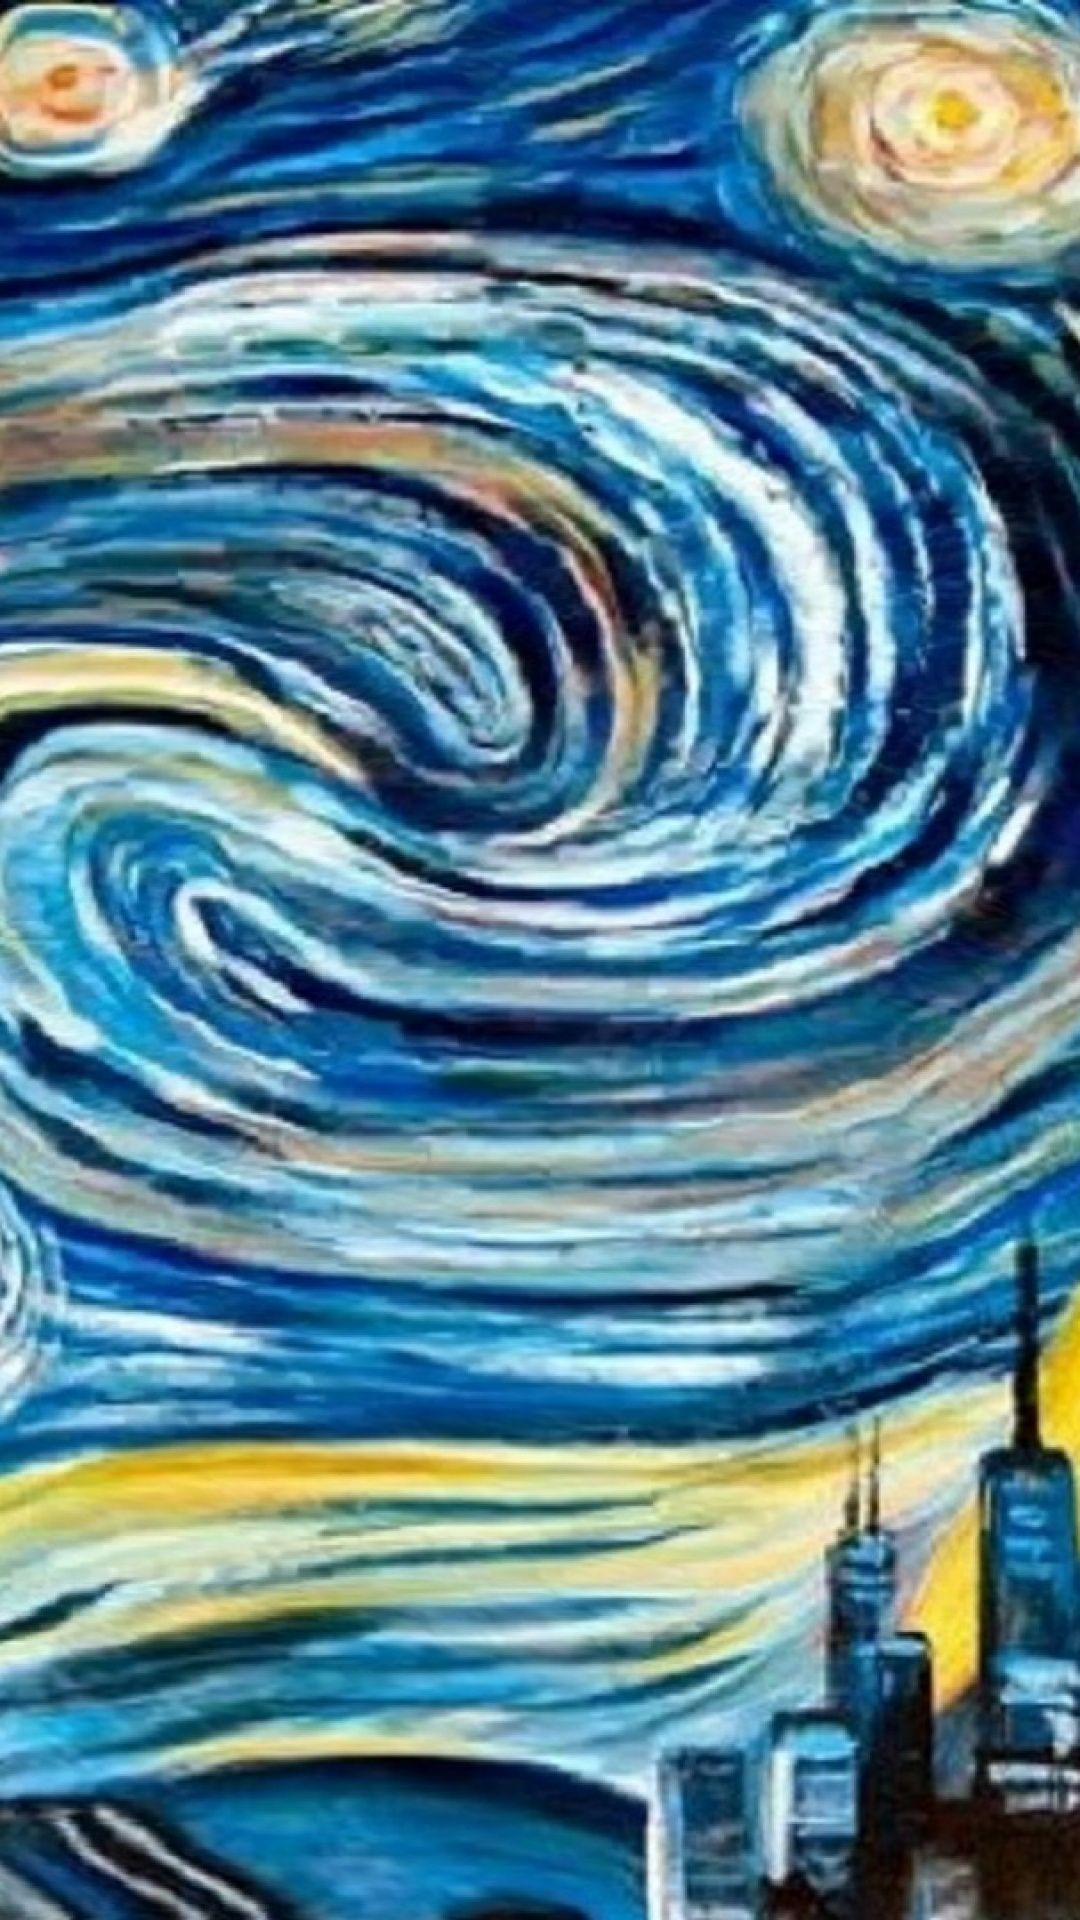 Vincent Van Gogh Iphone Wallpapers Top Free Vincent Van